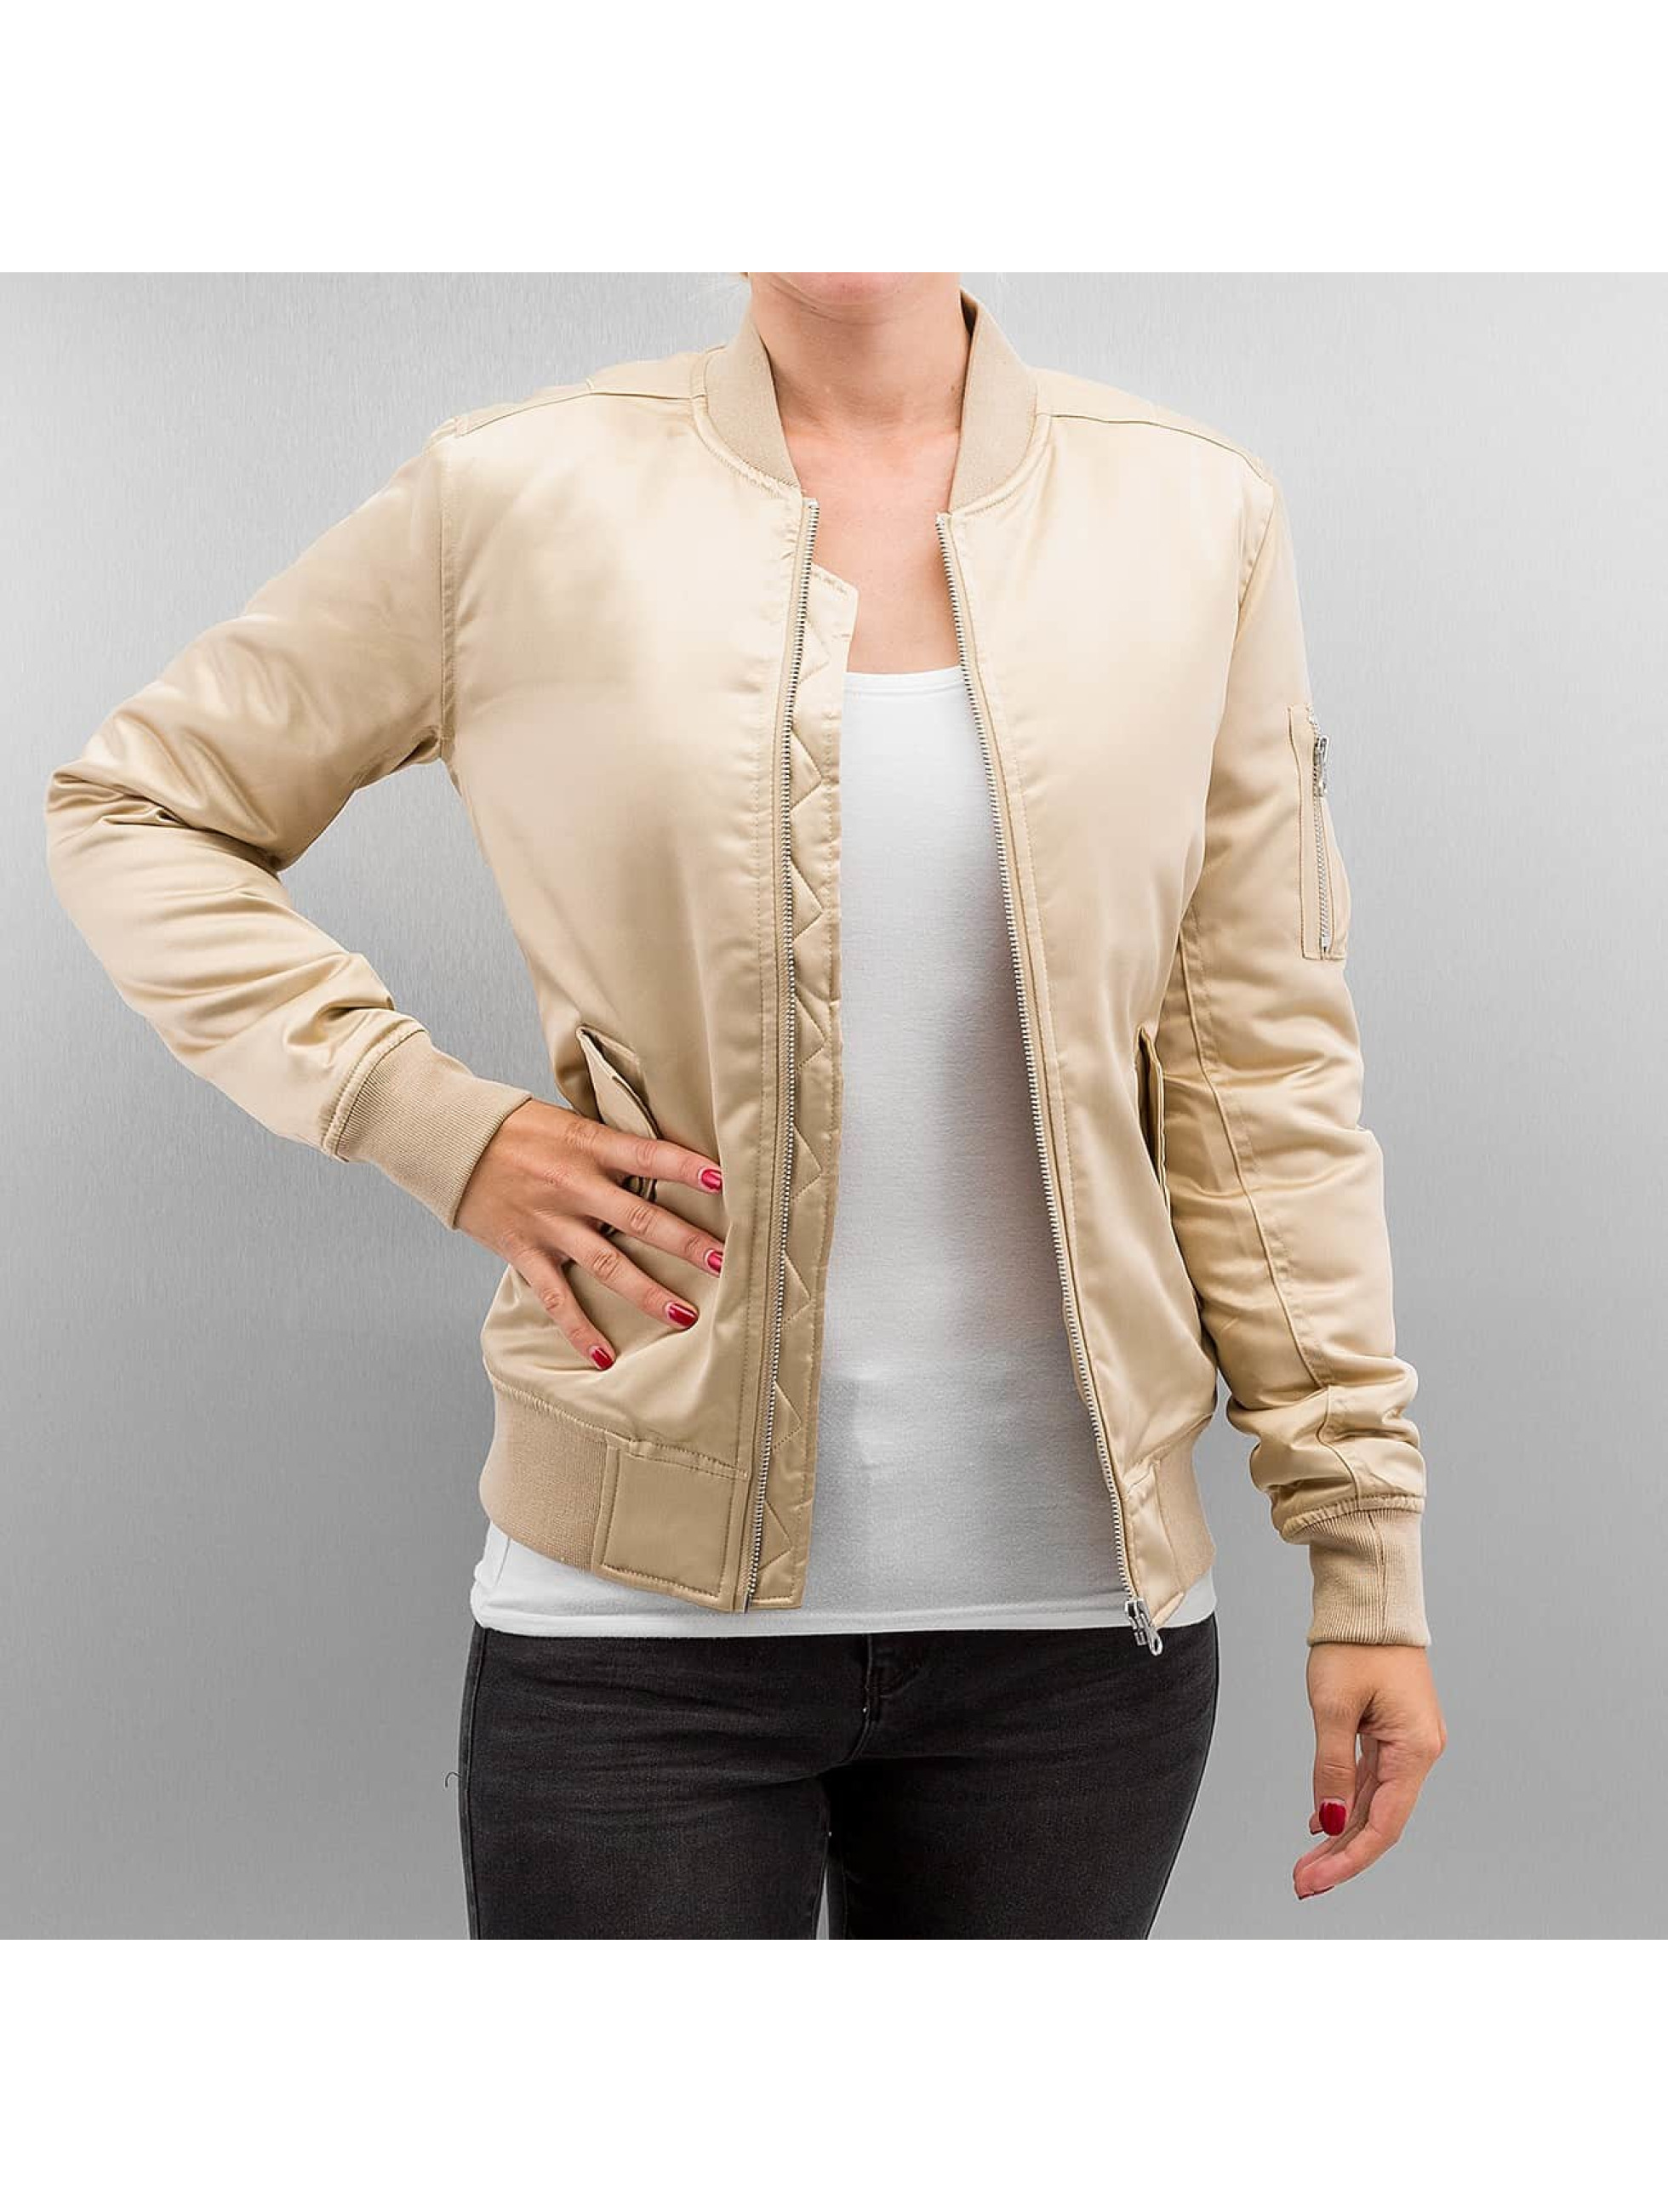 Übergangsjacke Ladies Satin Bomber in goldfarben